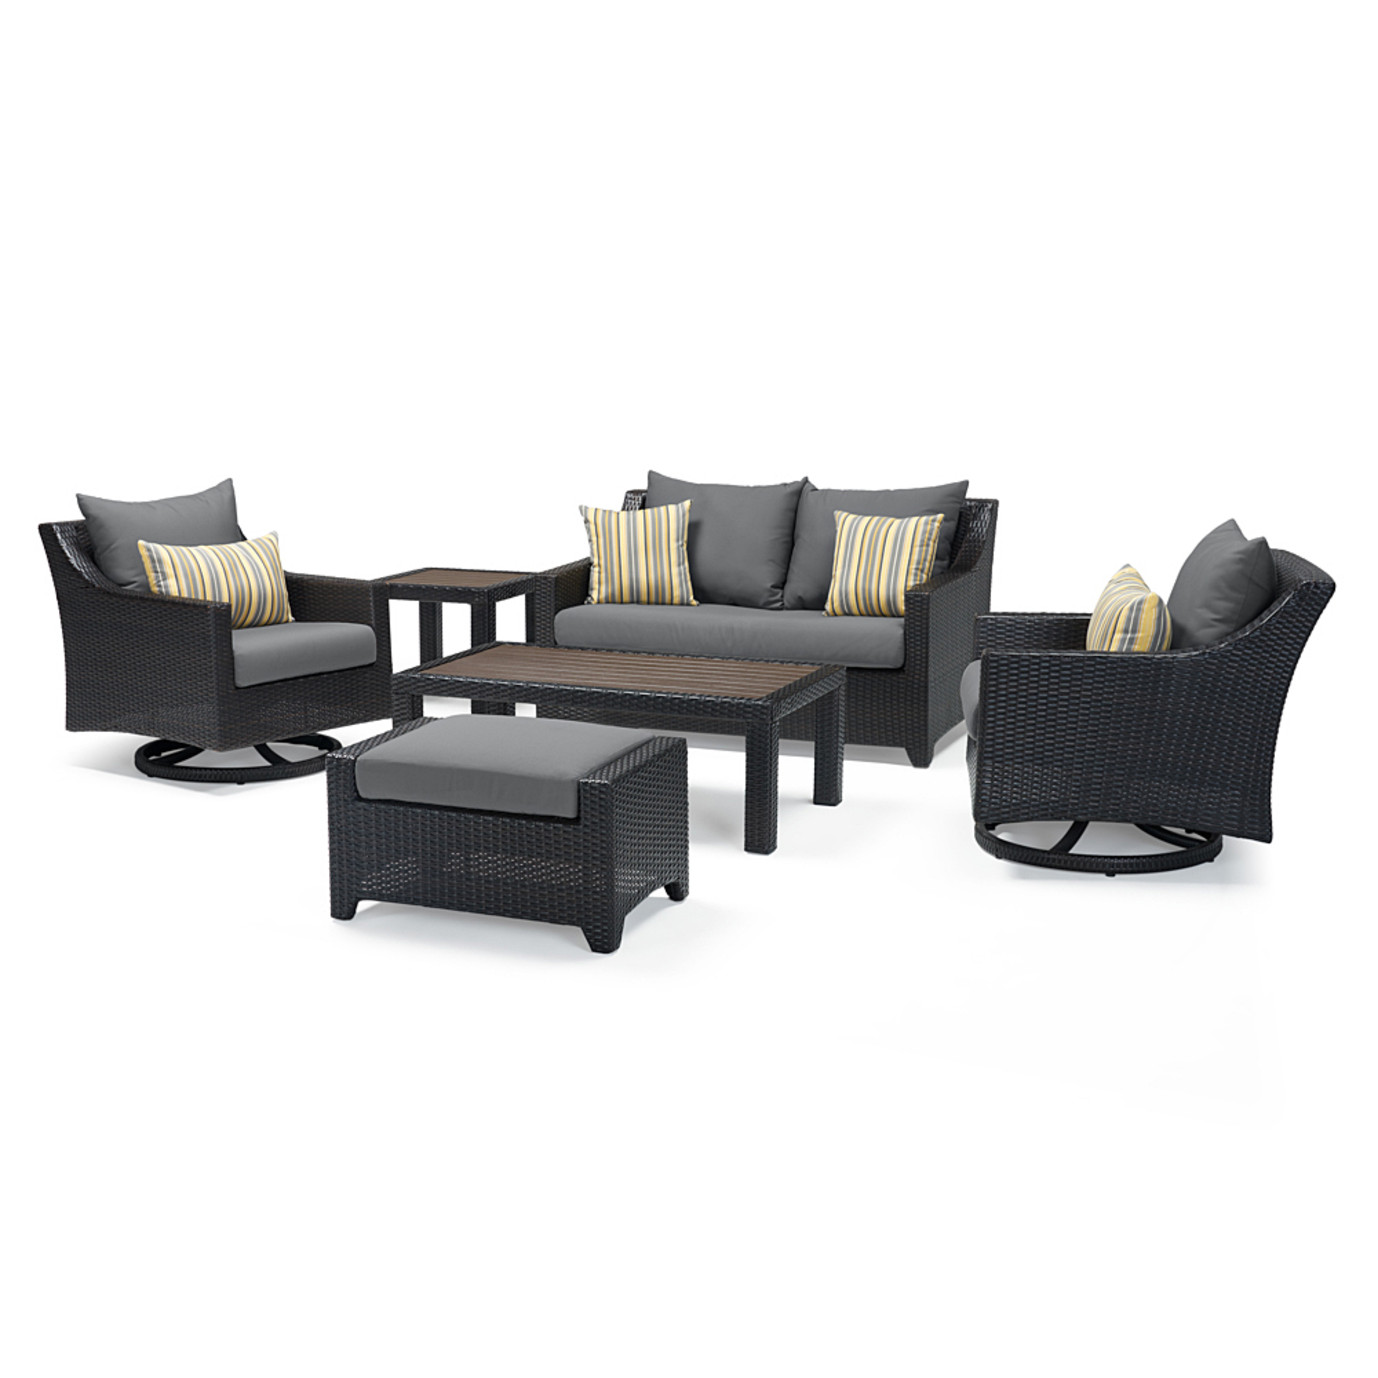 Deco Deluxe 6pc Love & Motion Club Seating Set - Charcoal Grey